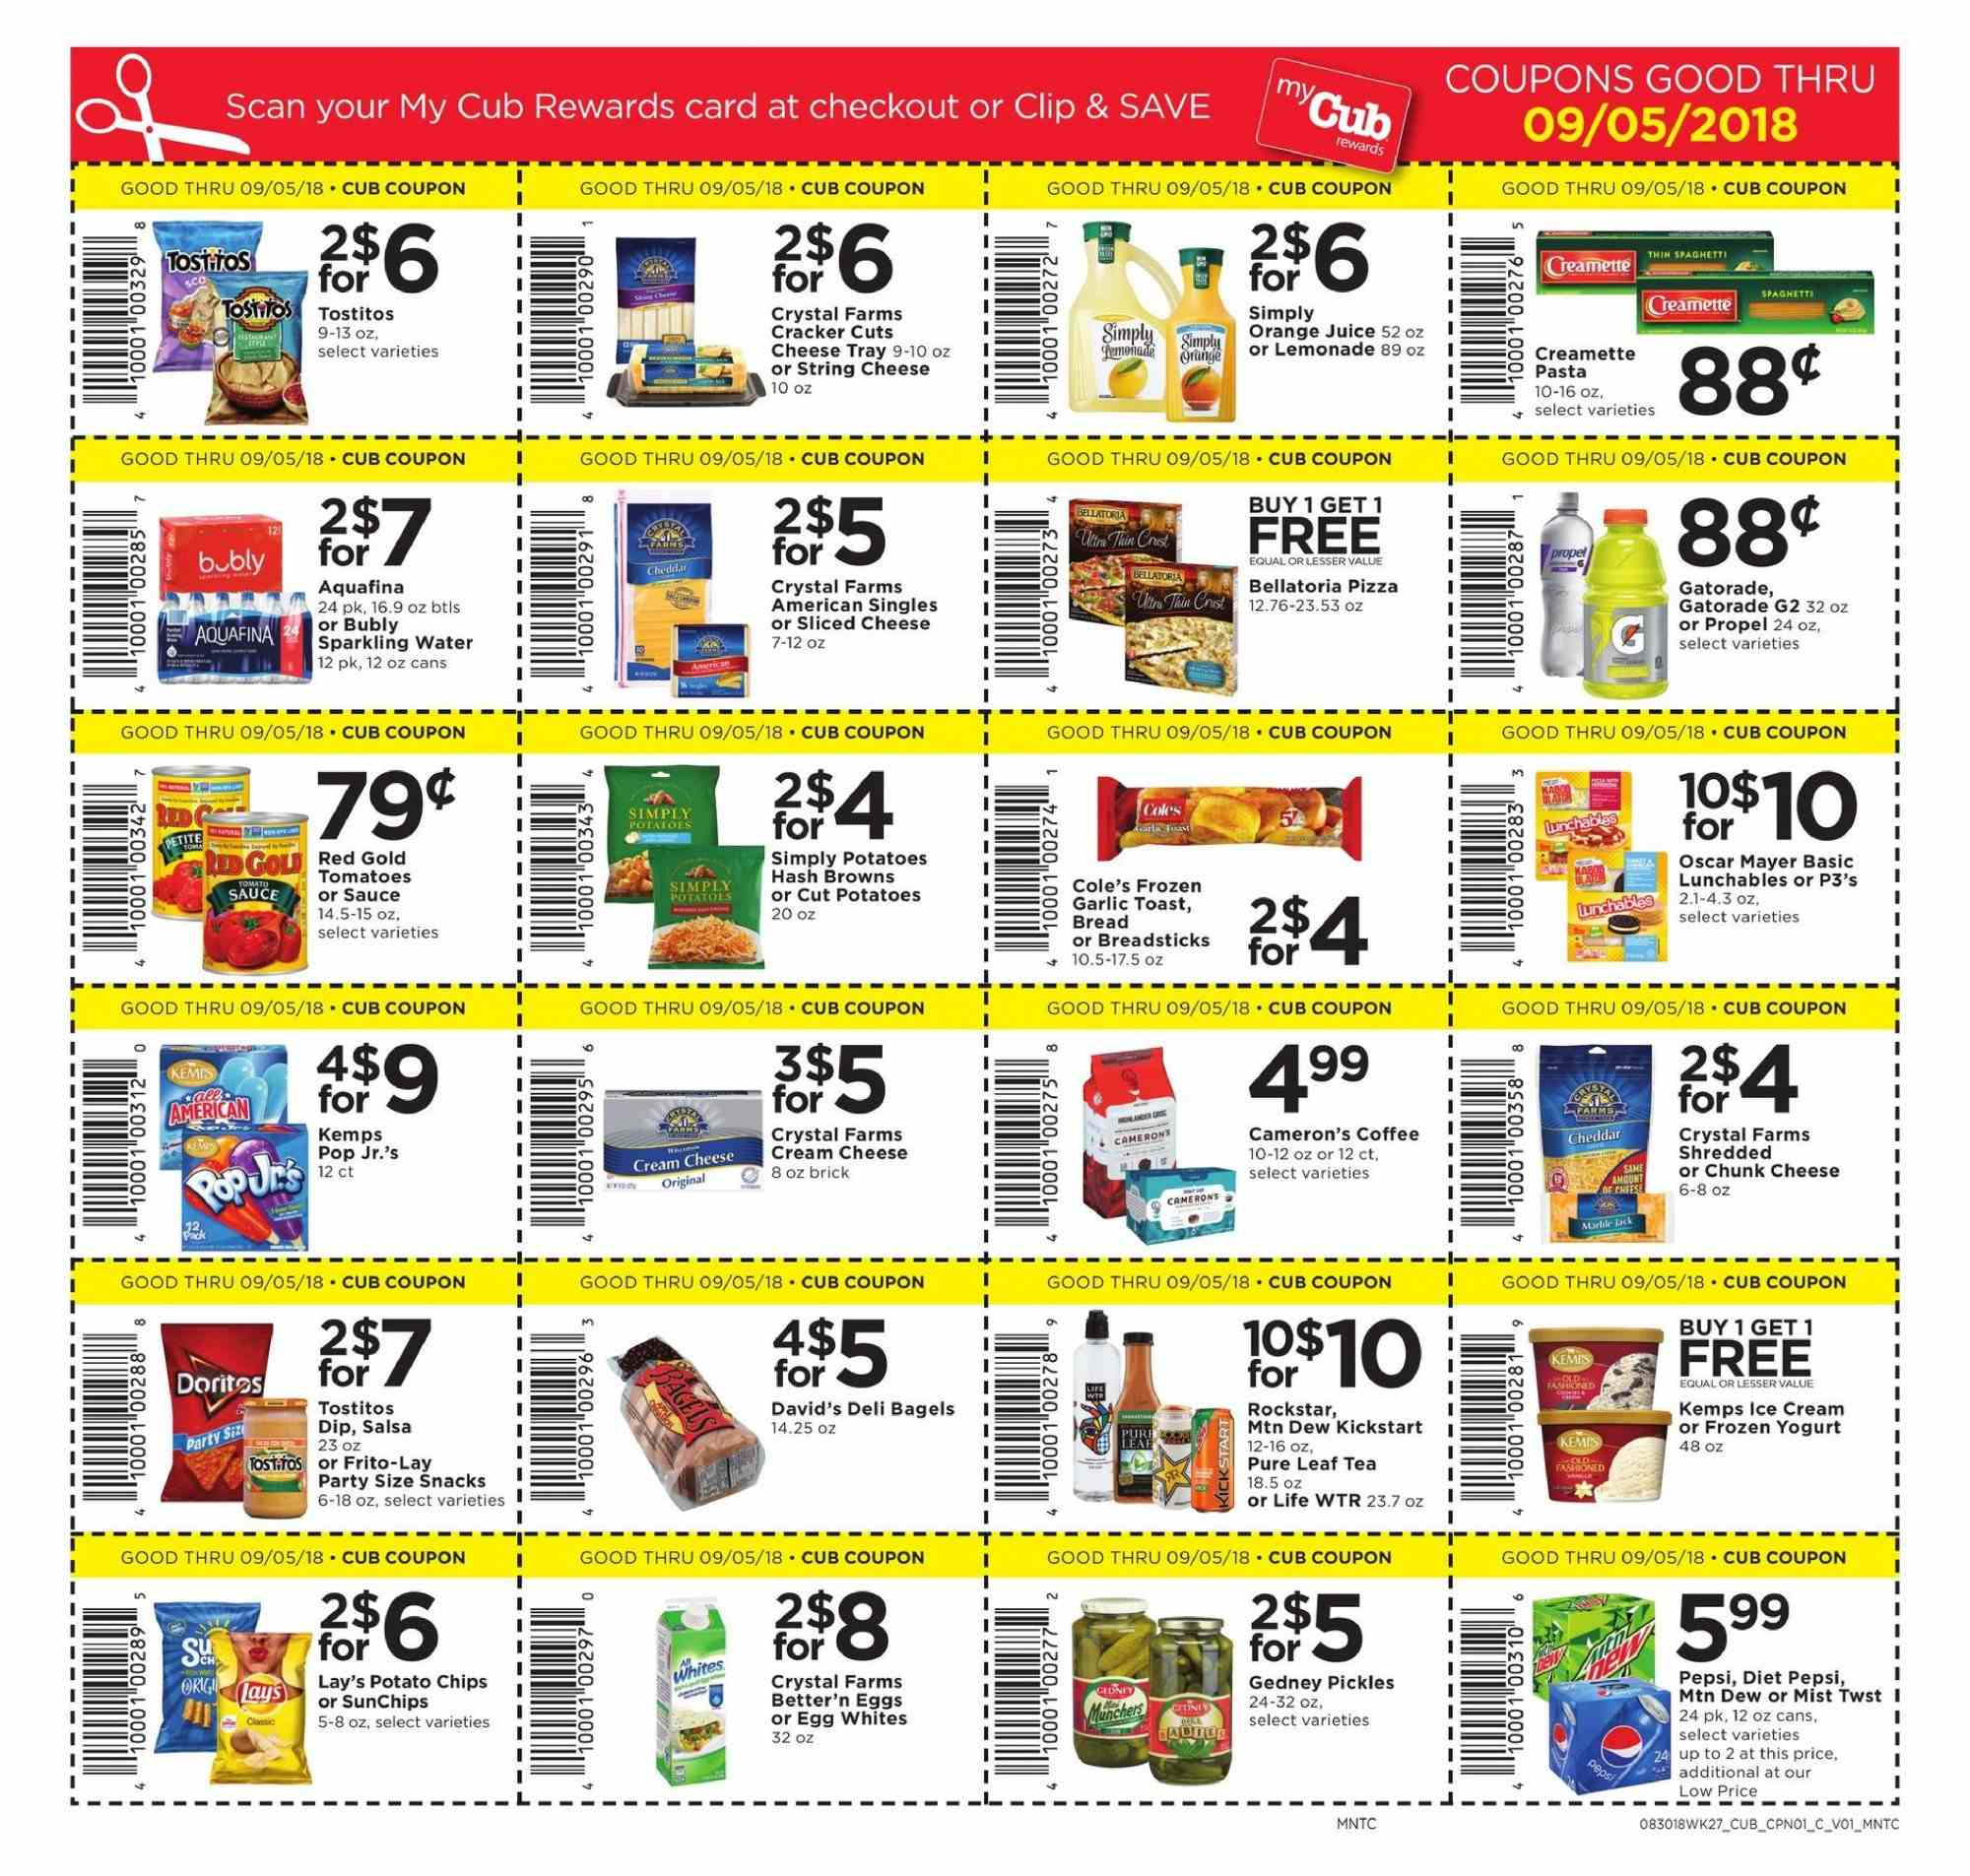 Cub Foods Flyer - 08.30.2018 - 09.05.2018 - Sales products - tomatoes, orange, bread, breadsticks, bagels, cream cheese, pizza, sliced cheese, string cheese, cheese, eggs, sauce, potato chips, chips, Lay's, lemonade, Pepsi, orange juice, juice, diet pepsi, coffee. Page 1.